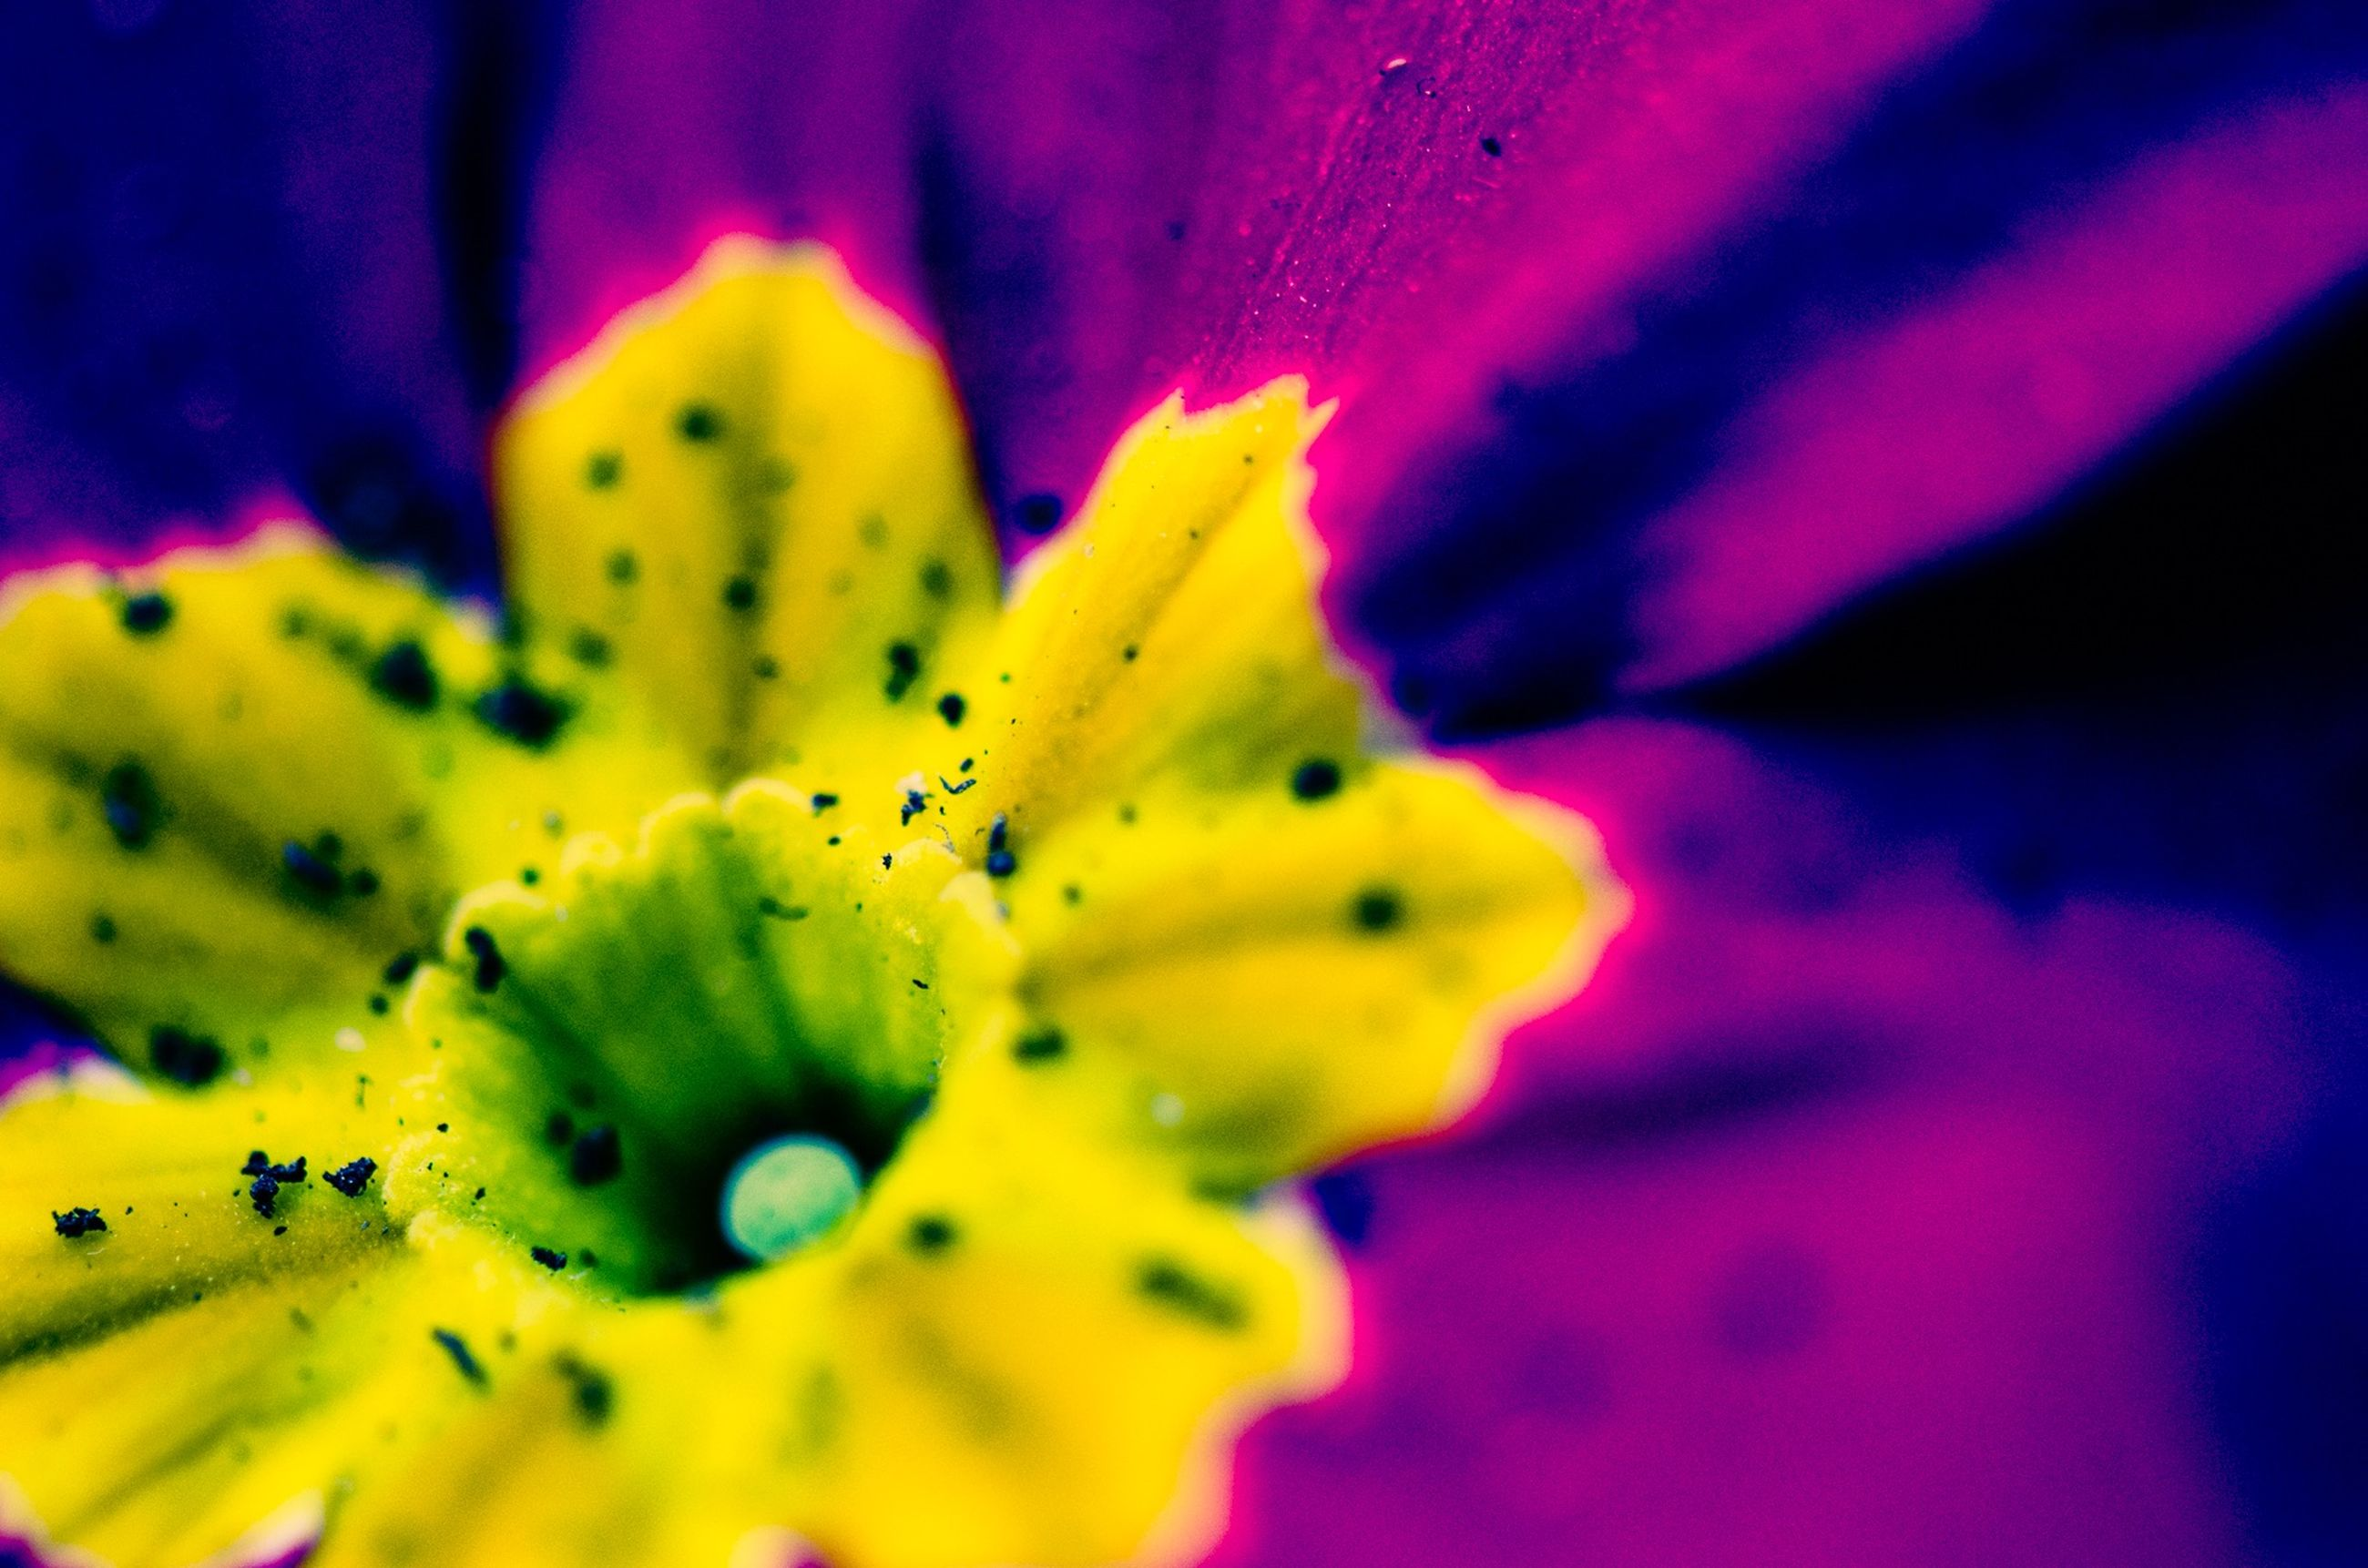 flower, petal, flower head, freshness, fragility, yellow, close-up, beauty in nature, single flower, growth, full frame, pollen, stamen, extreme close-up, nature, backgrounds, macro, selective focus, blooming, in bloom